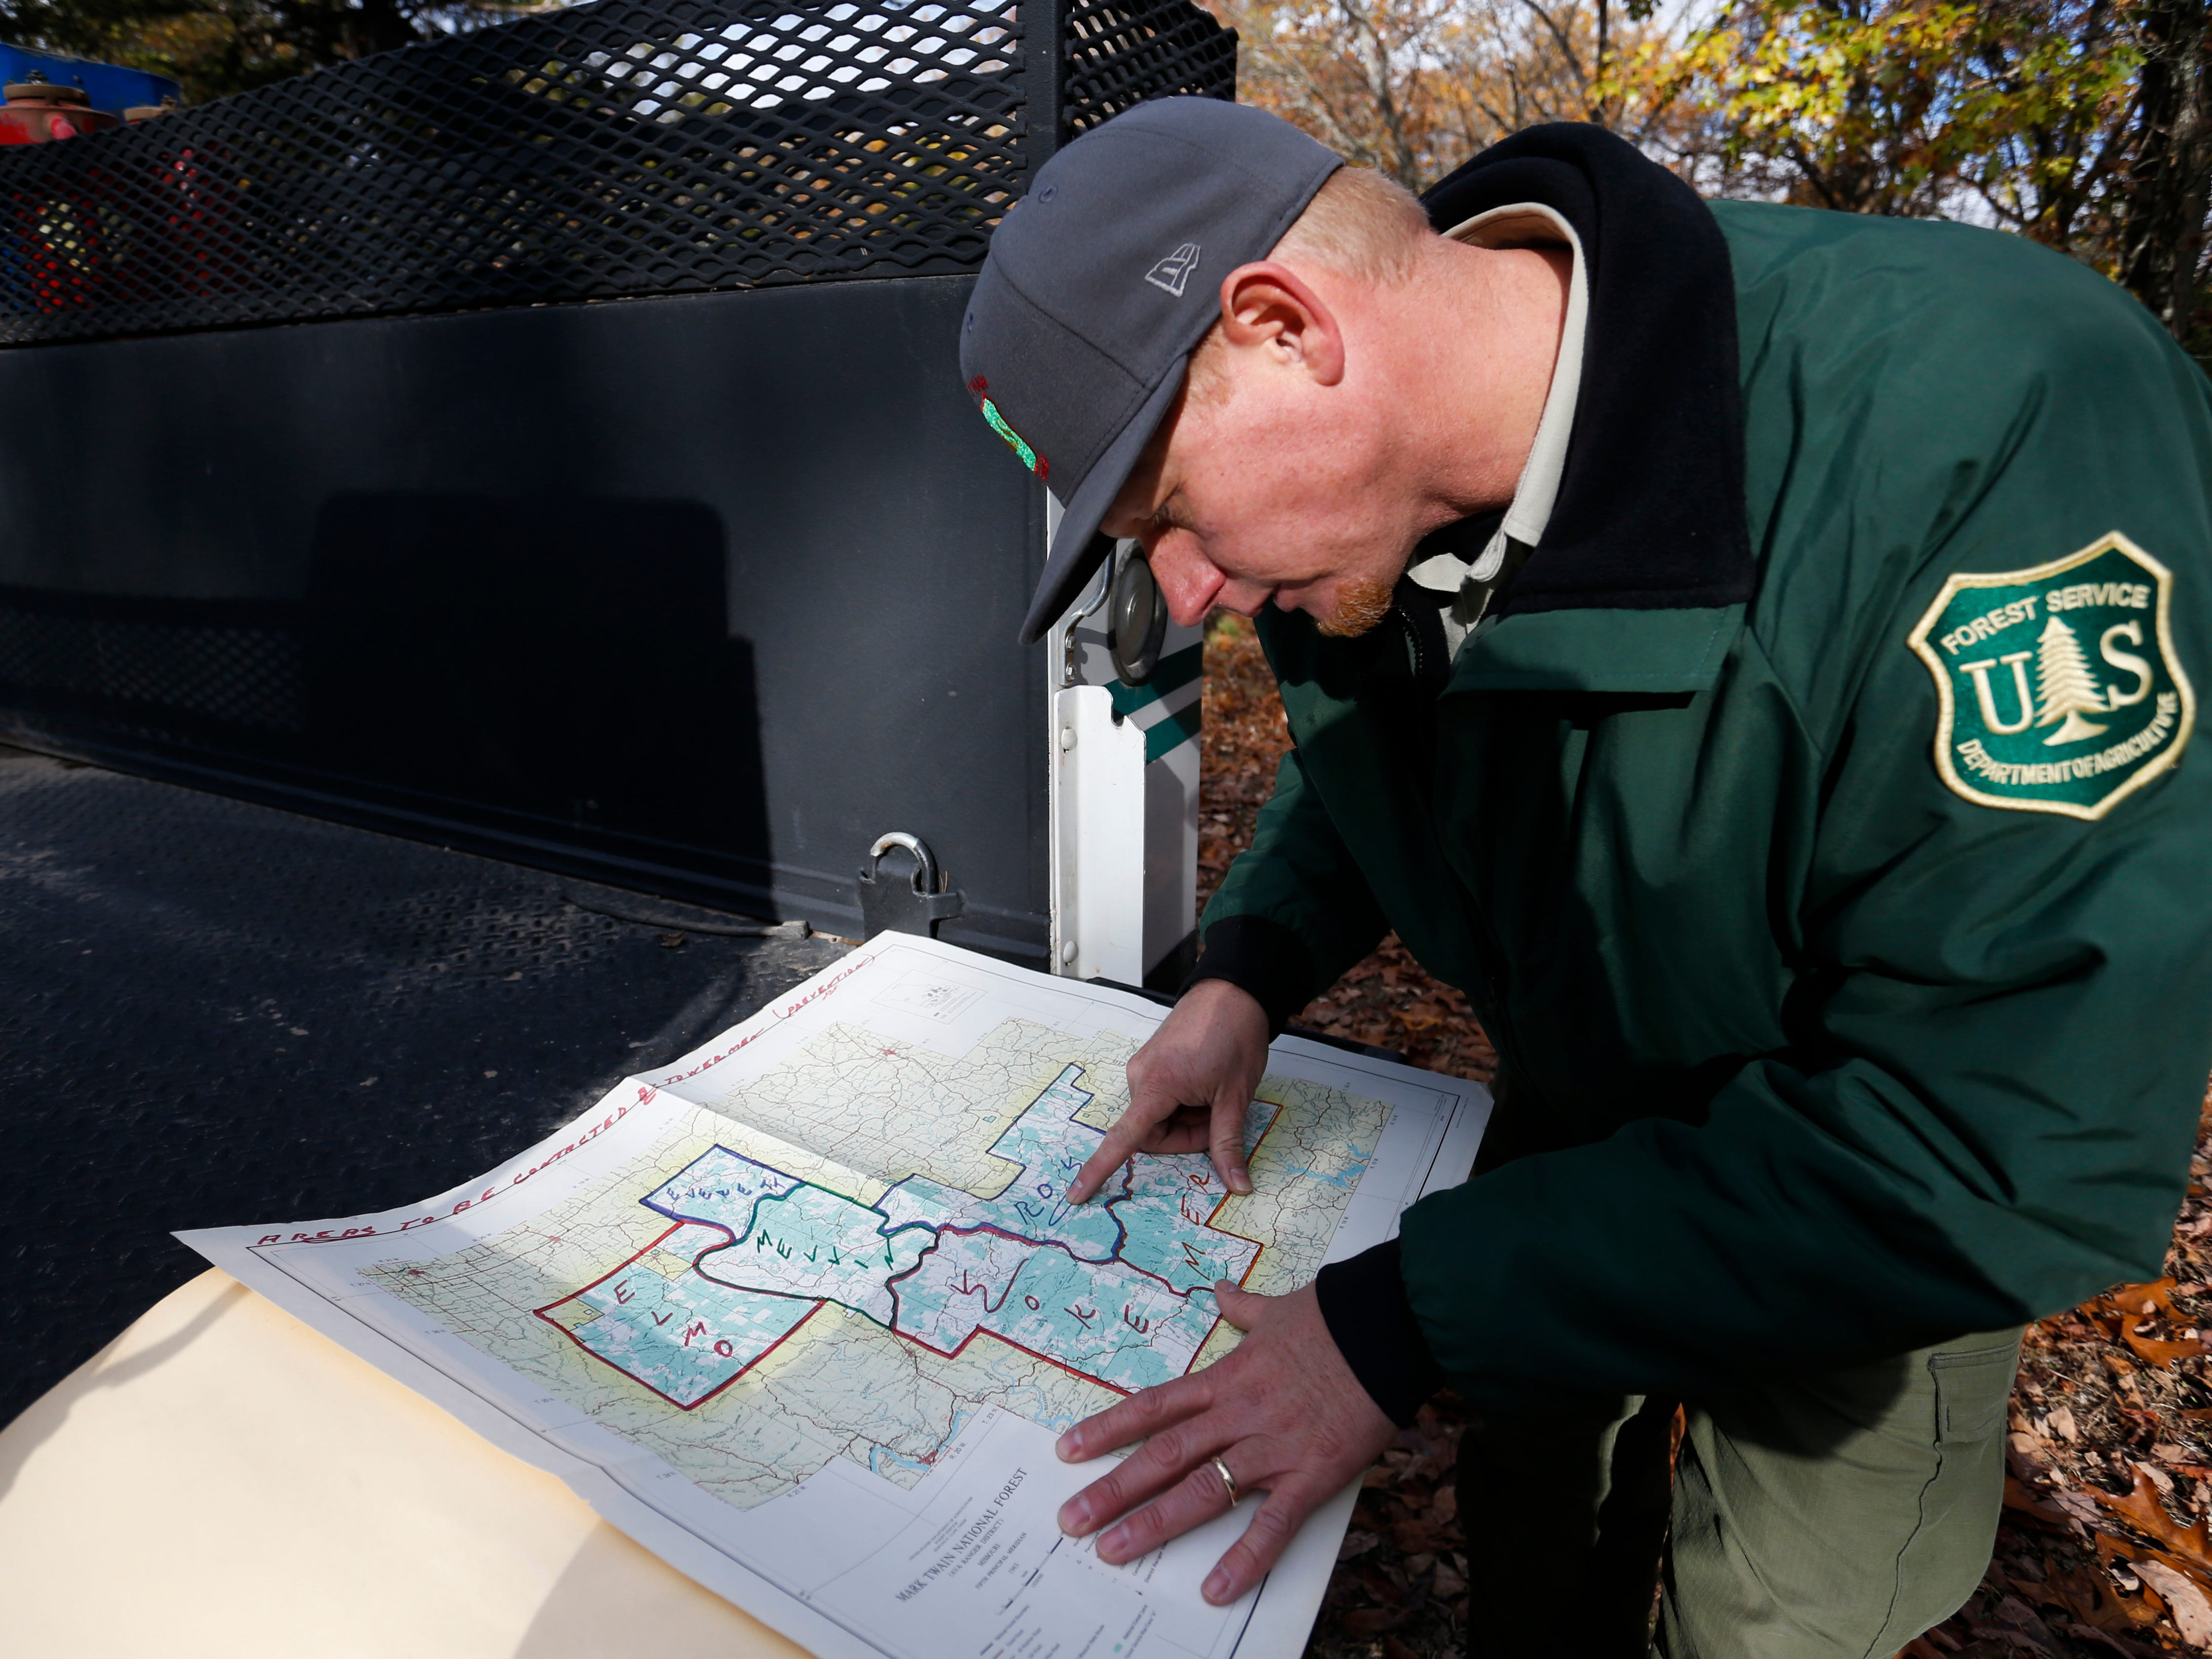 Reggie Bray, a Forest Service fire management officer, shows the locations of fire towers on old Forest Service maps.